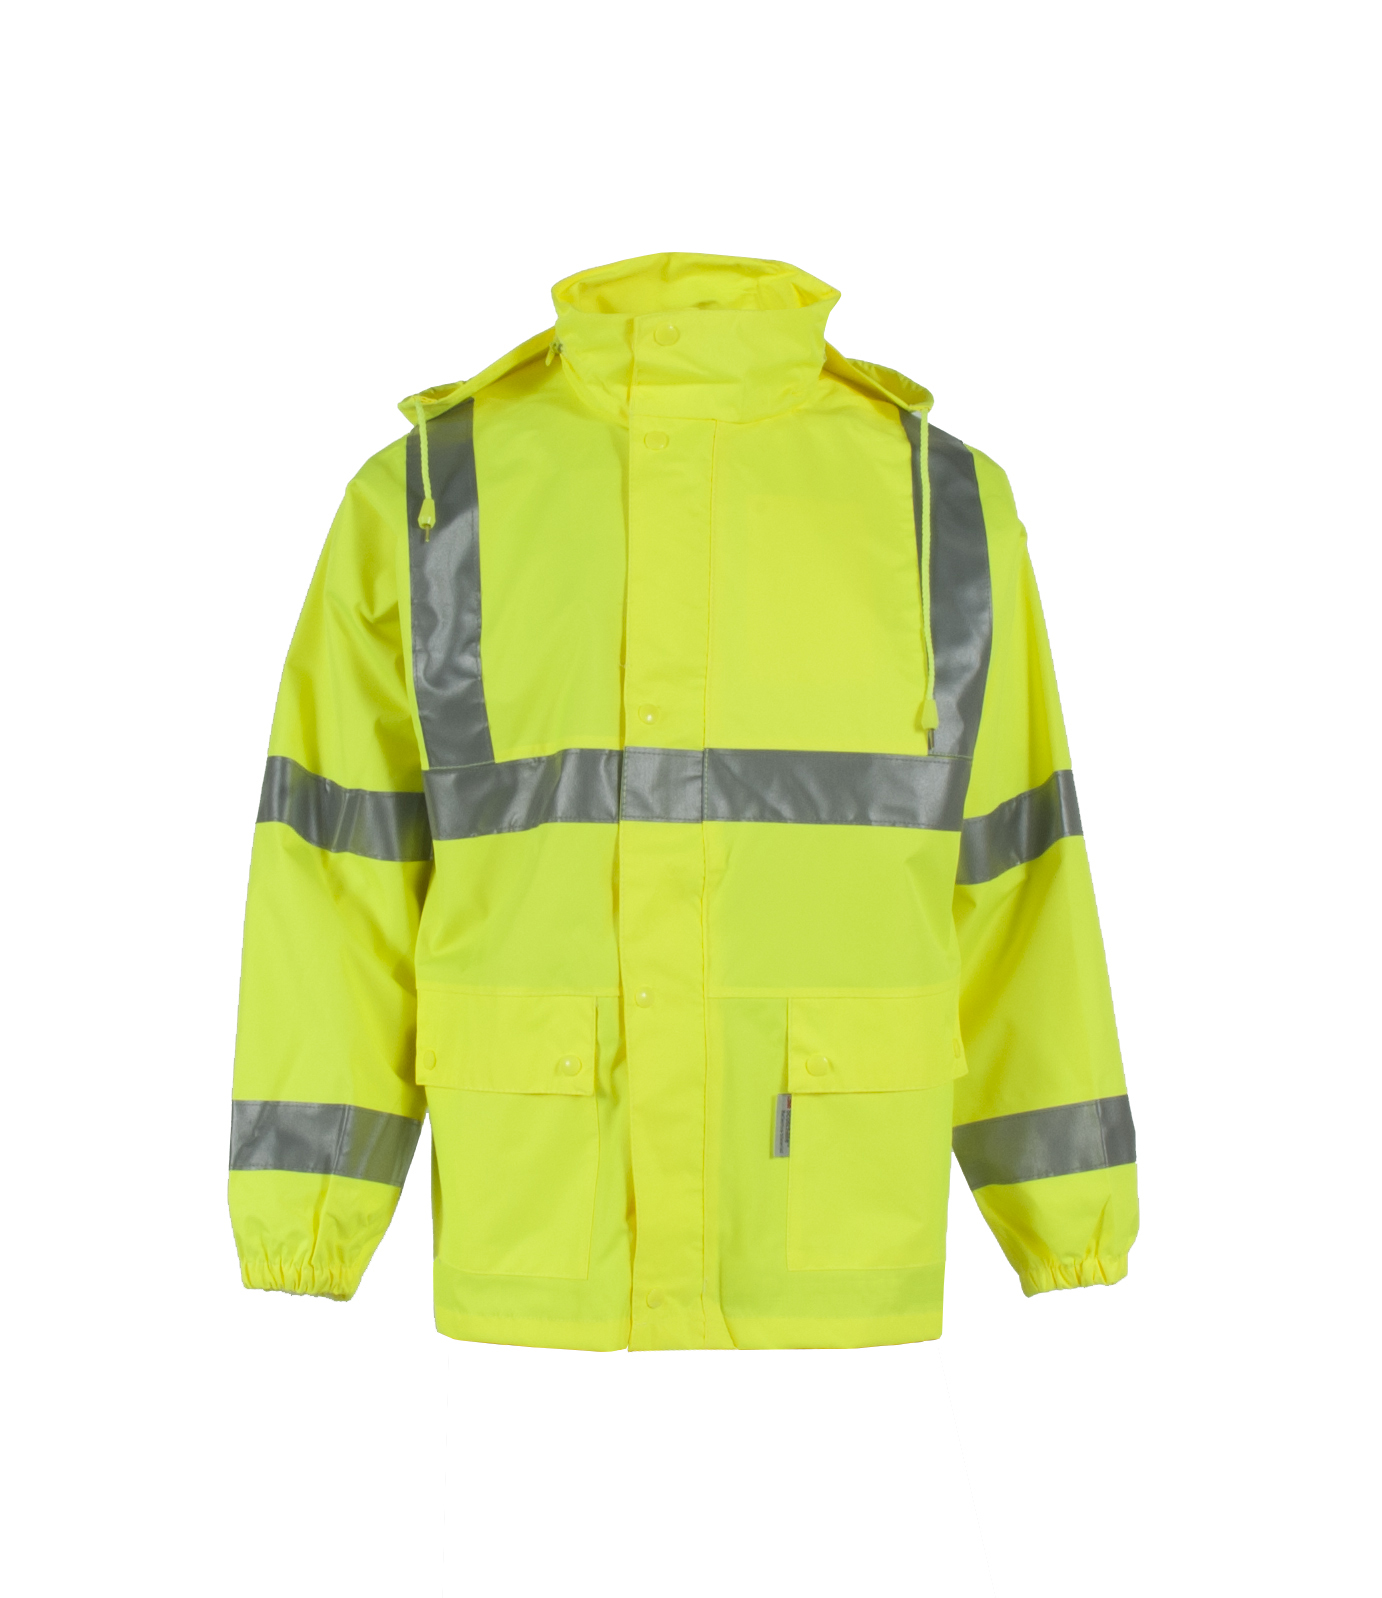 Neese Air Tex High Visibility Parka w/ Detachable Hood| 9100APK-